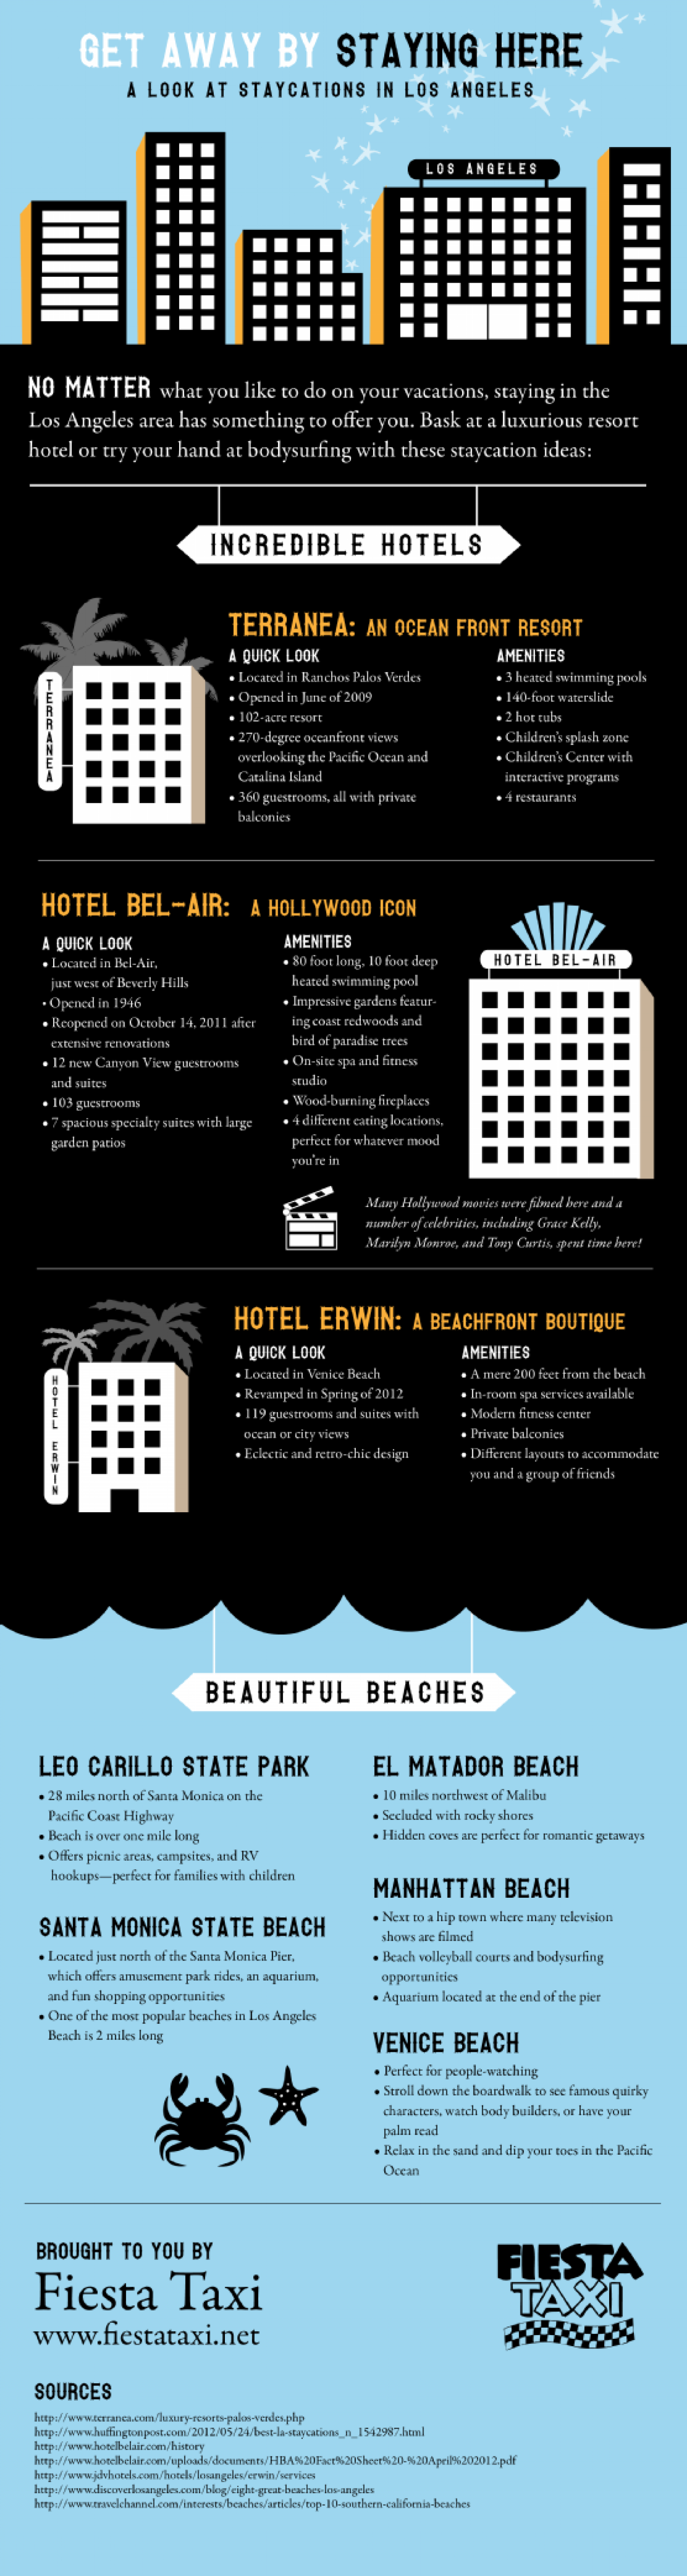 Get Away by Staying Here: A Look at Staycations in Los Angeles Infographic